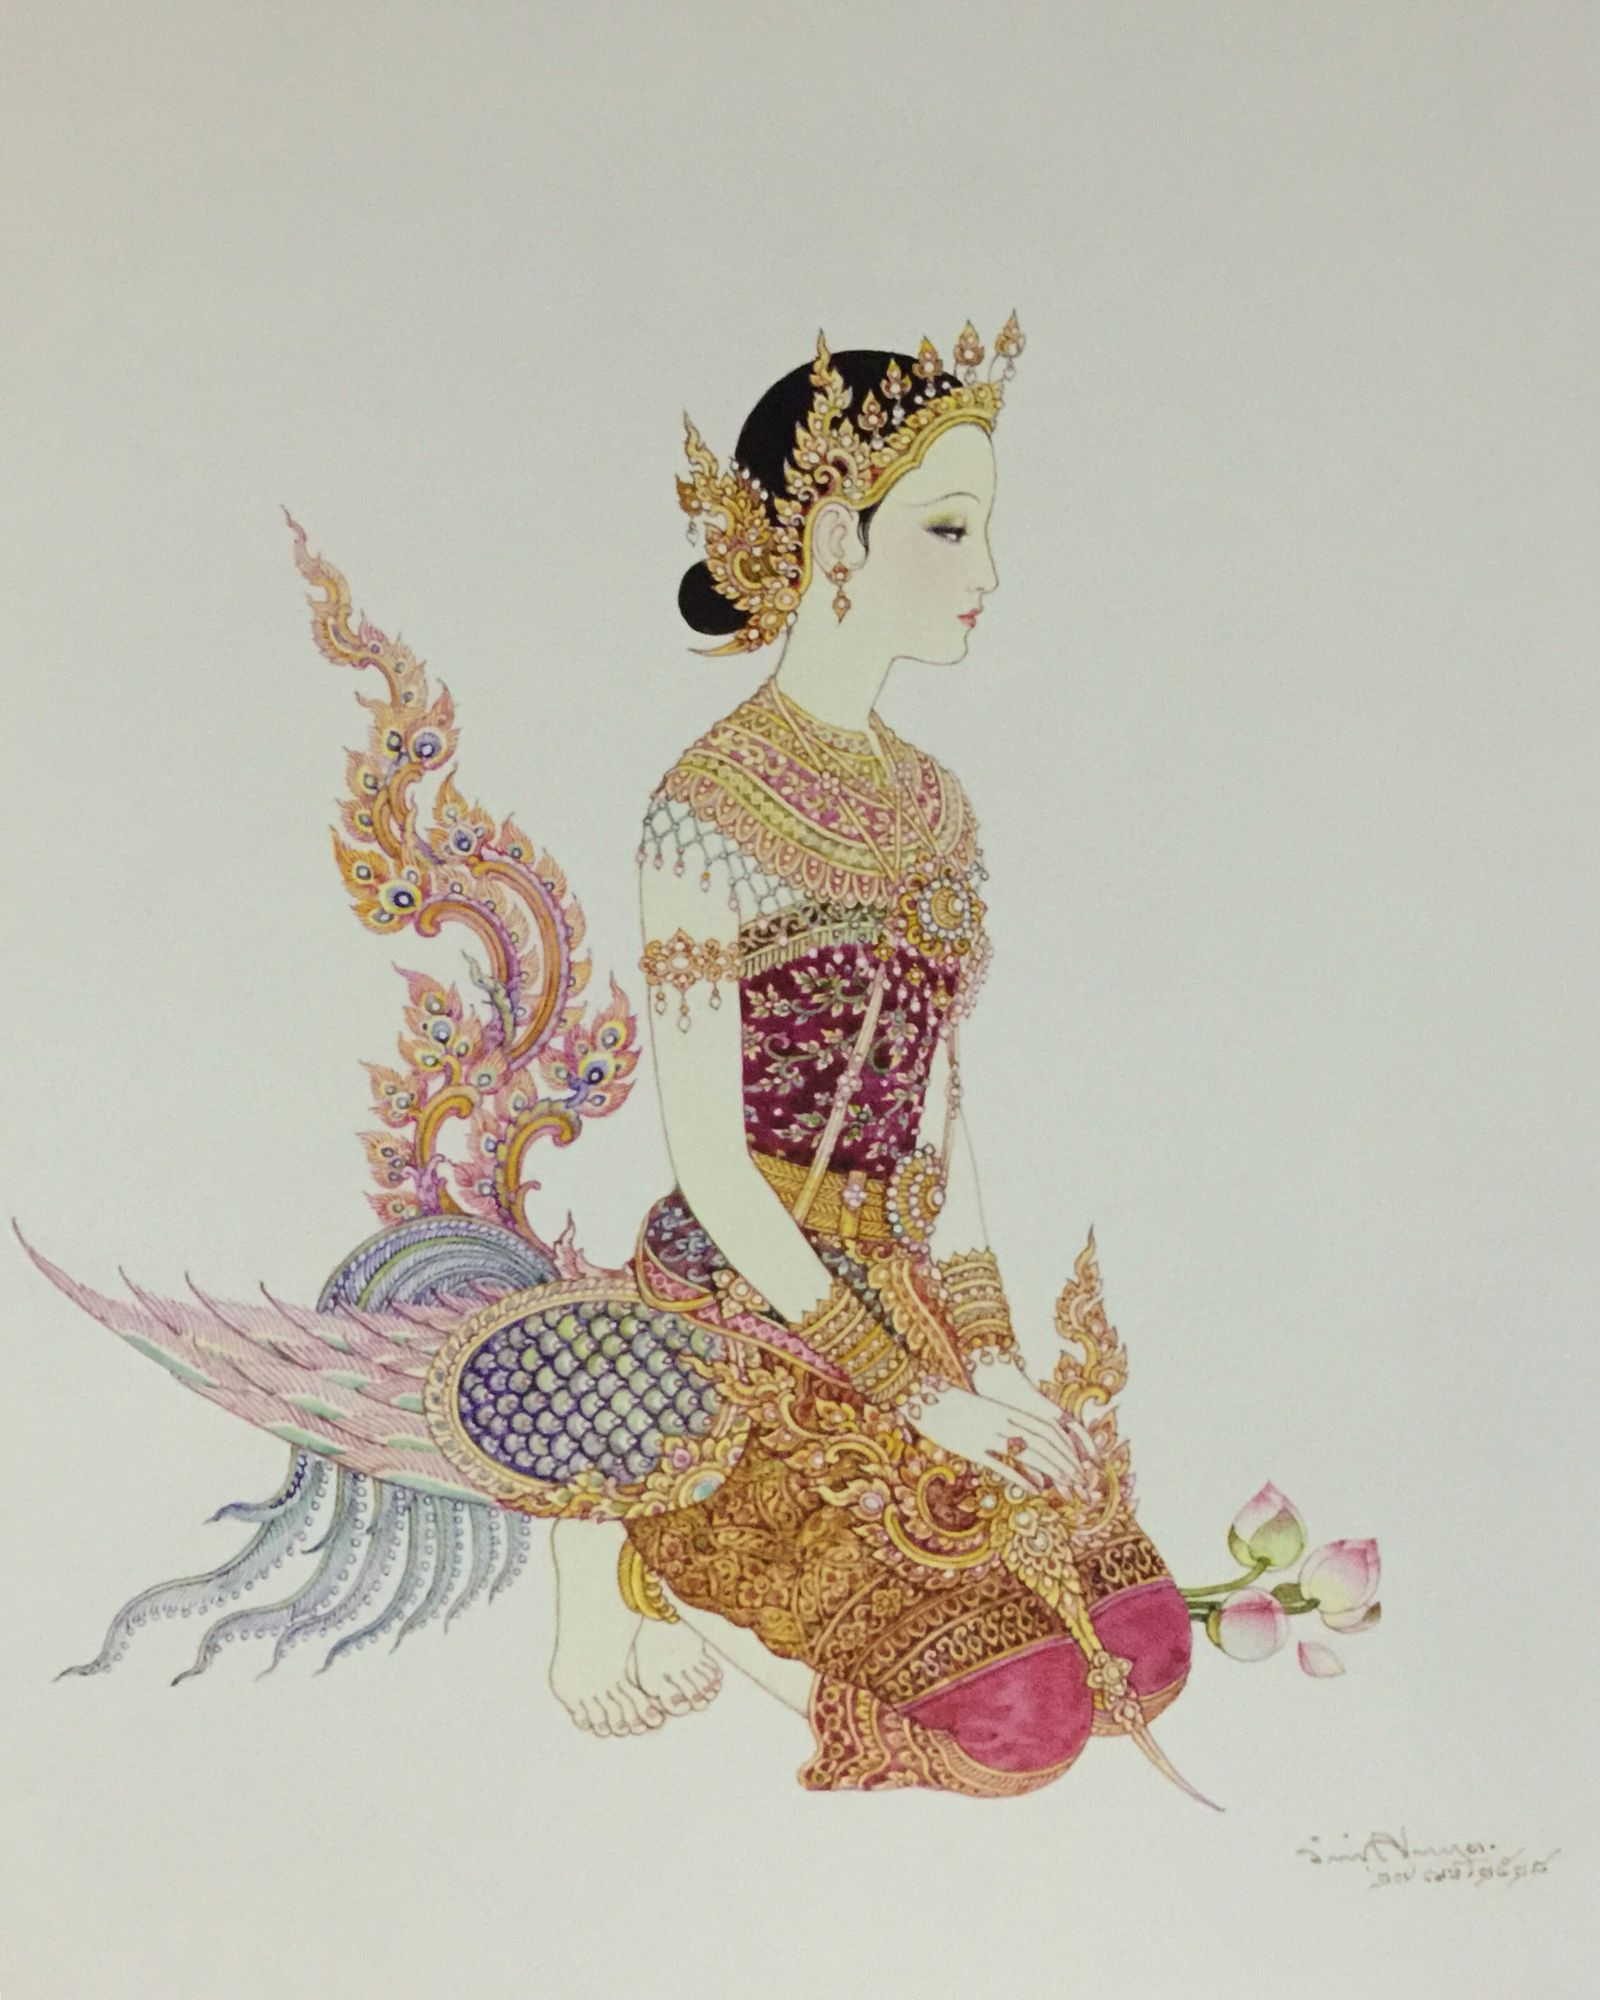 """A kinnari in a tiara"", 1985, watercolor on paper, by a Thai national artist Chakrabhand Posayakrit"